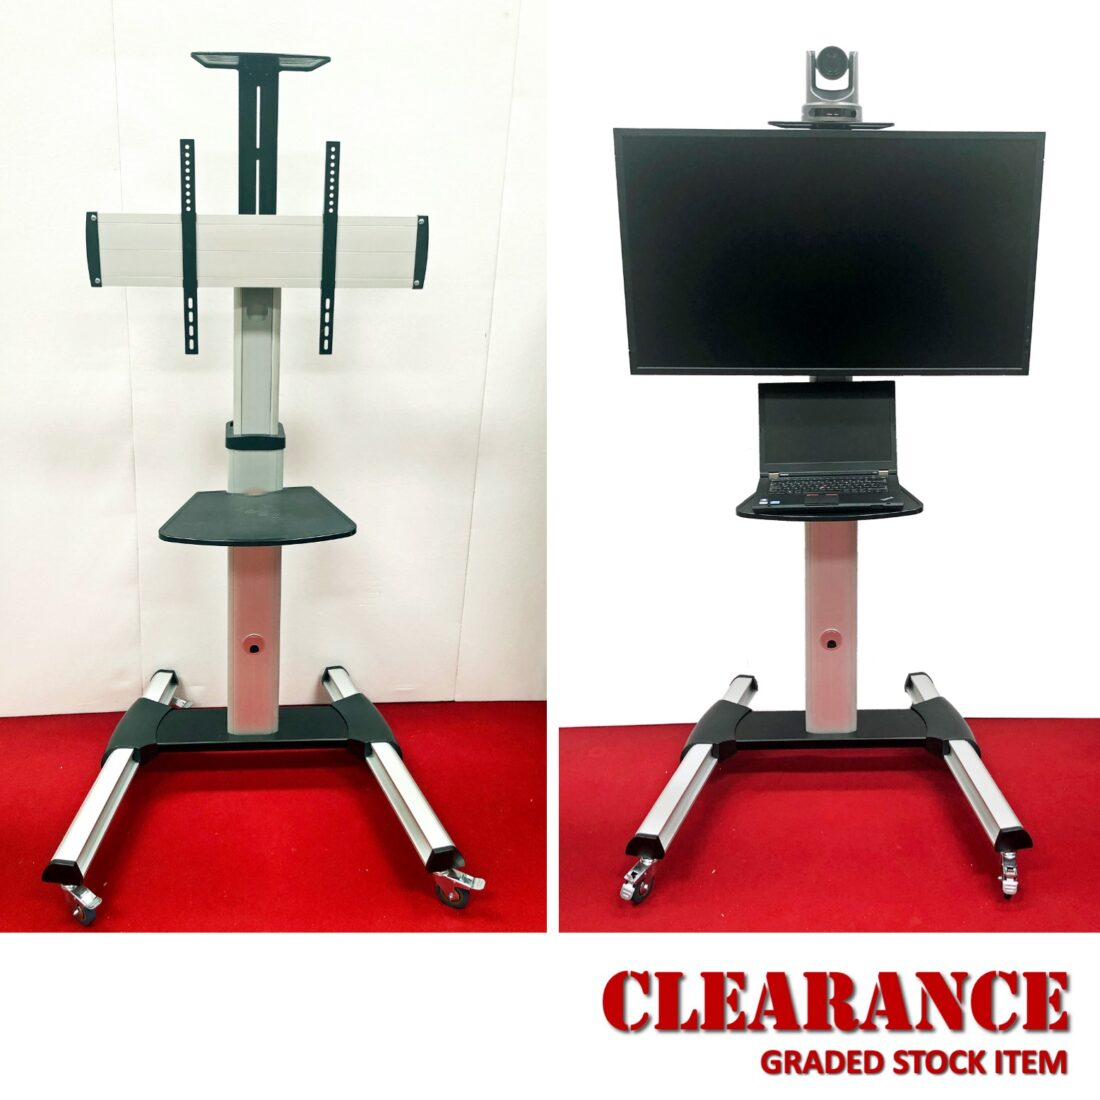 TV / video conferencing stand